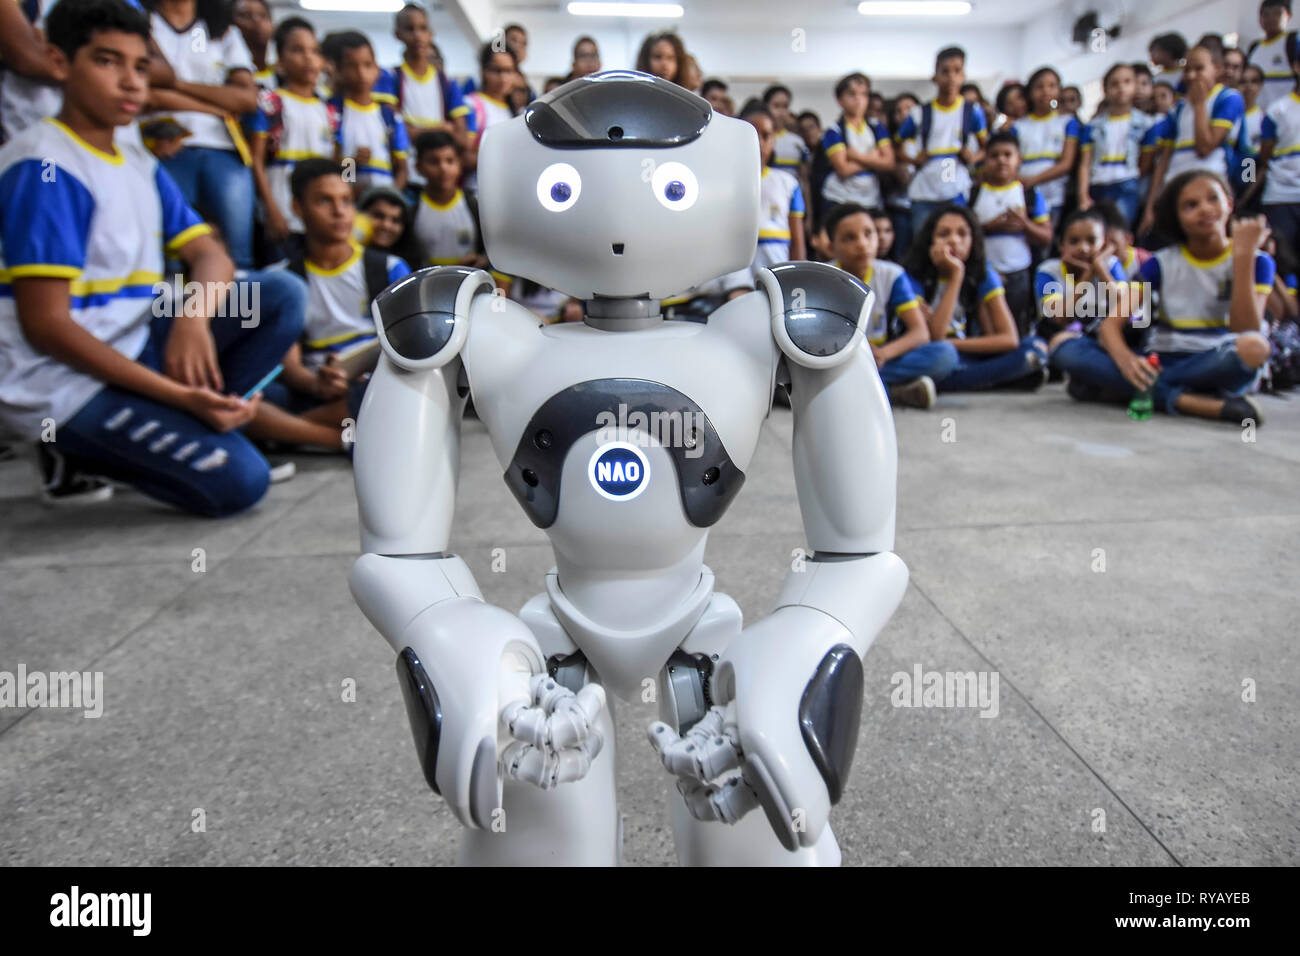 Recife, Brazil. 13th Mar, 2019. PE - Recife - 03/13/2019 - Robos Humanoides - Recife - The city of Recife, through the secretary of education, delivery of 10 new humanoid robberies (NAO) the Generation 6 version, first copy of Latin America, at the Municipal School Rodolfo Aureliano, in Varzea district, on Wednesday (13) Photo: Paulo Paiva / AGIF Credit: AGIF/Alamy Live News - Stock Image